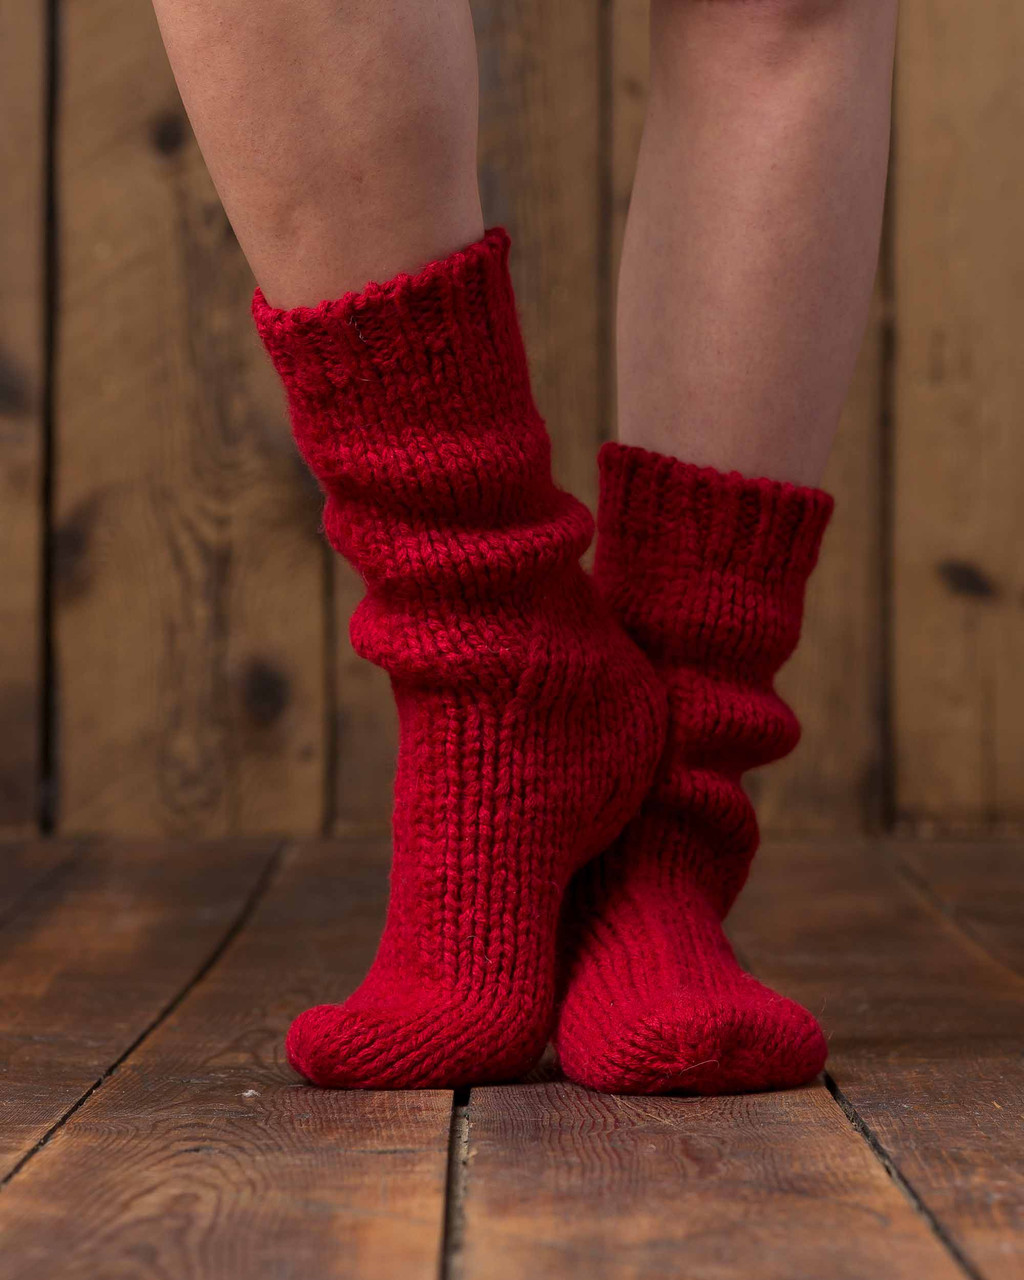 Alicia Adams Alpaca Lounge Sock, alpaca socks, womens alpaca socks, alpaca socks men, alpaca wool socks, scarlet alpaca socks